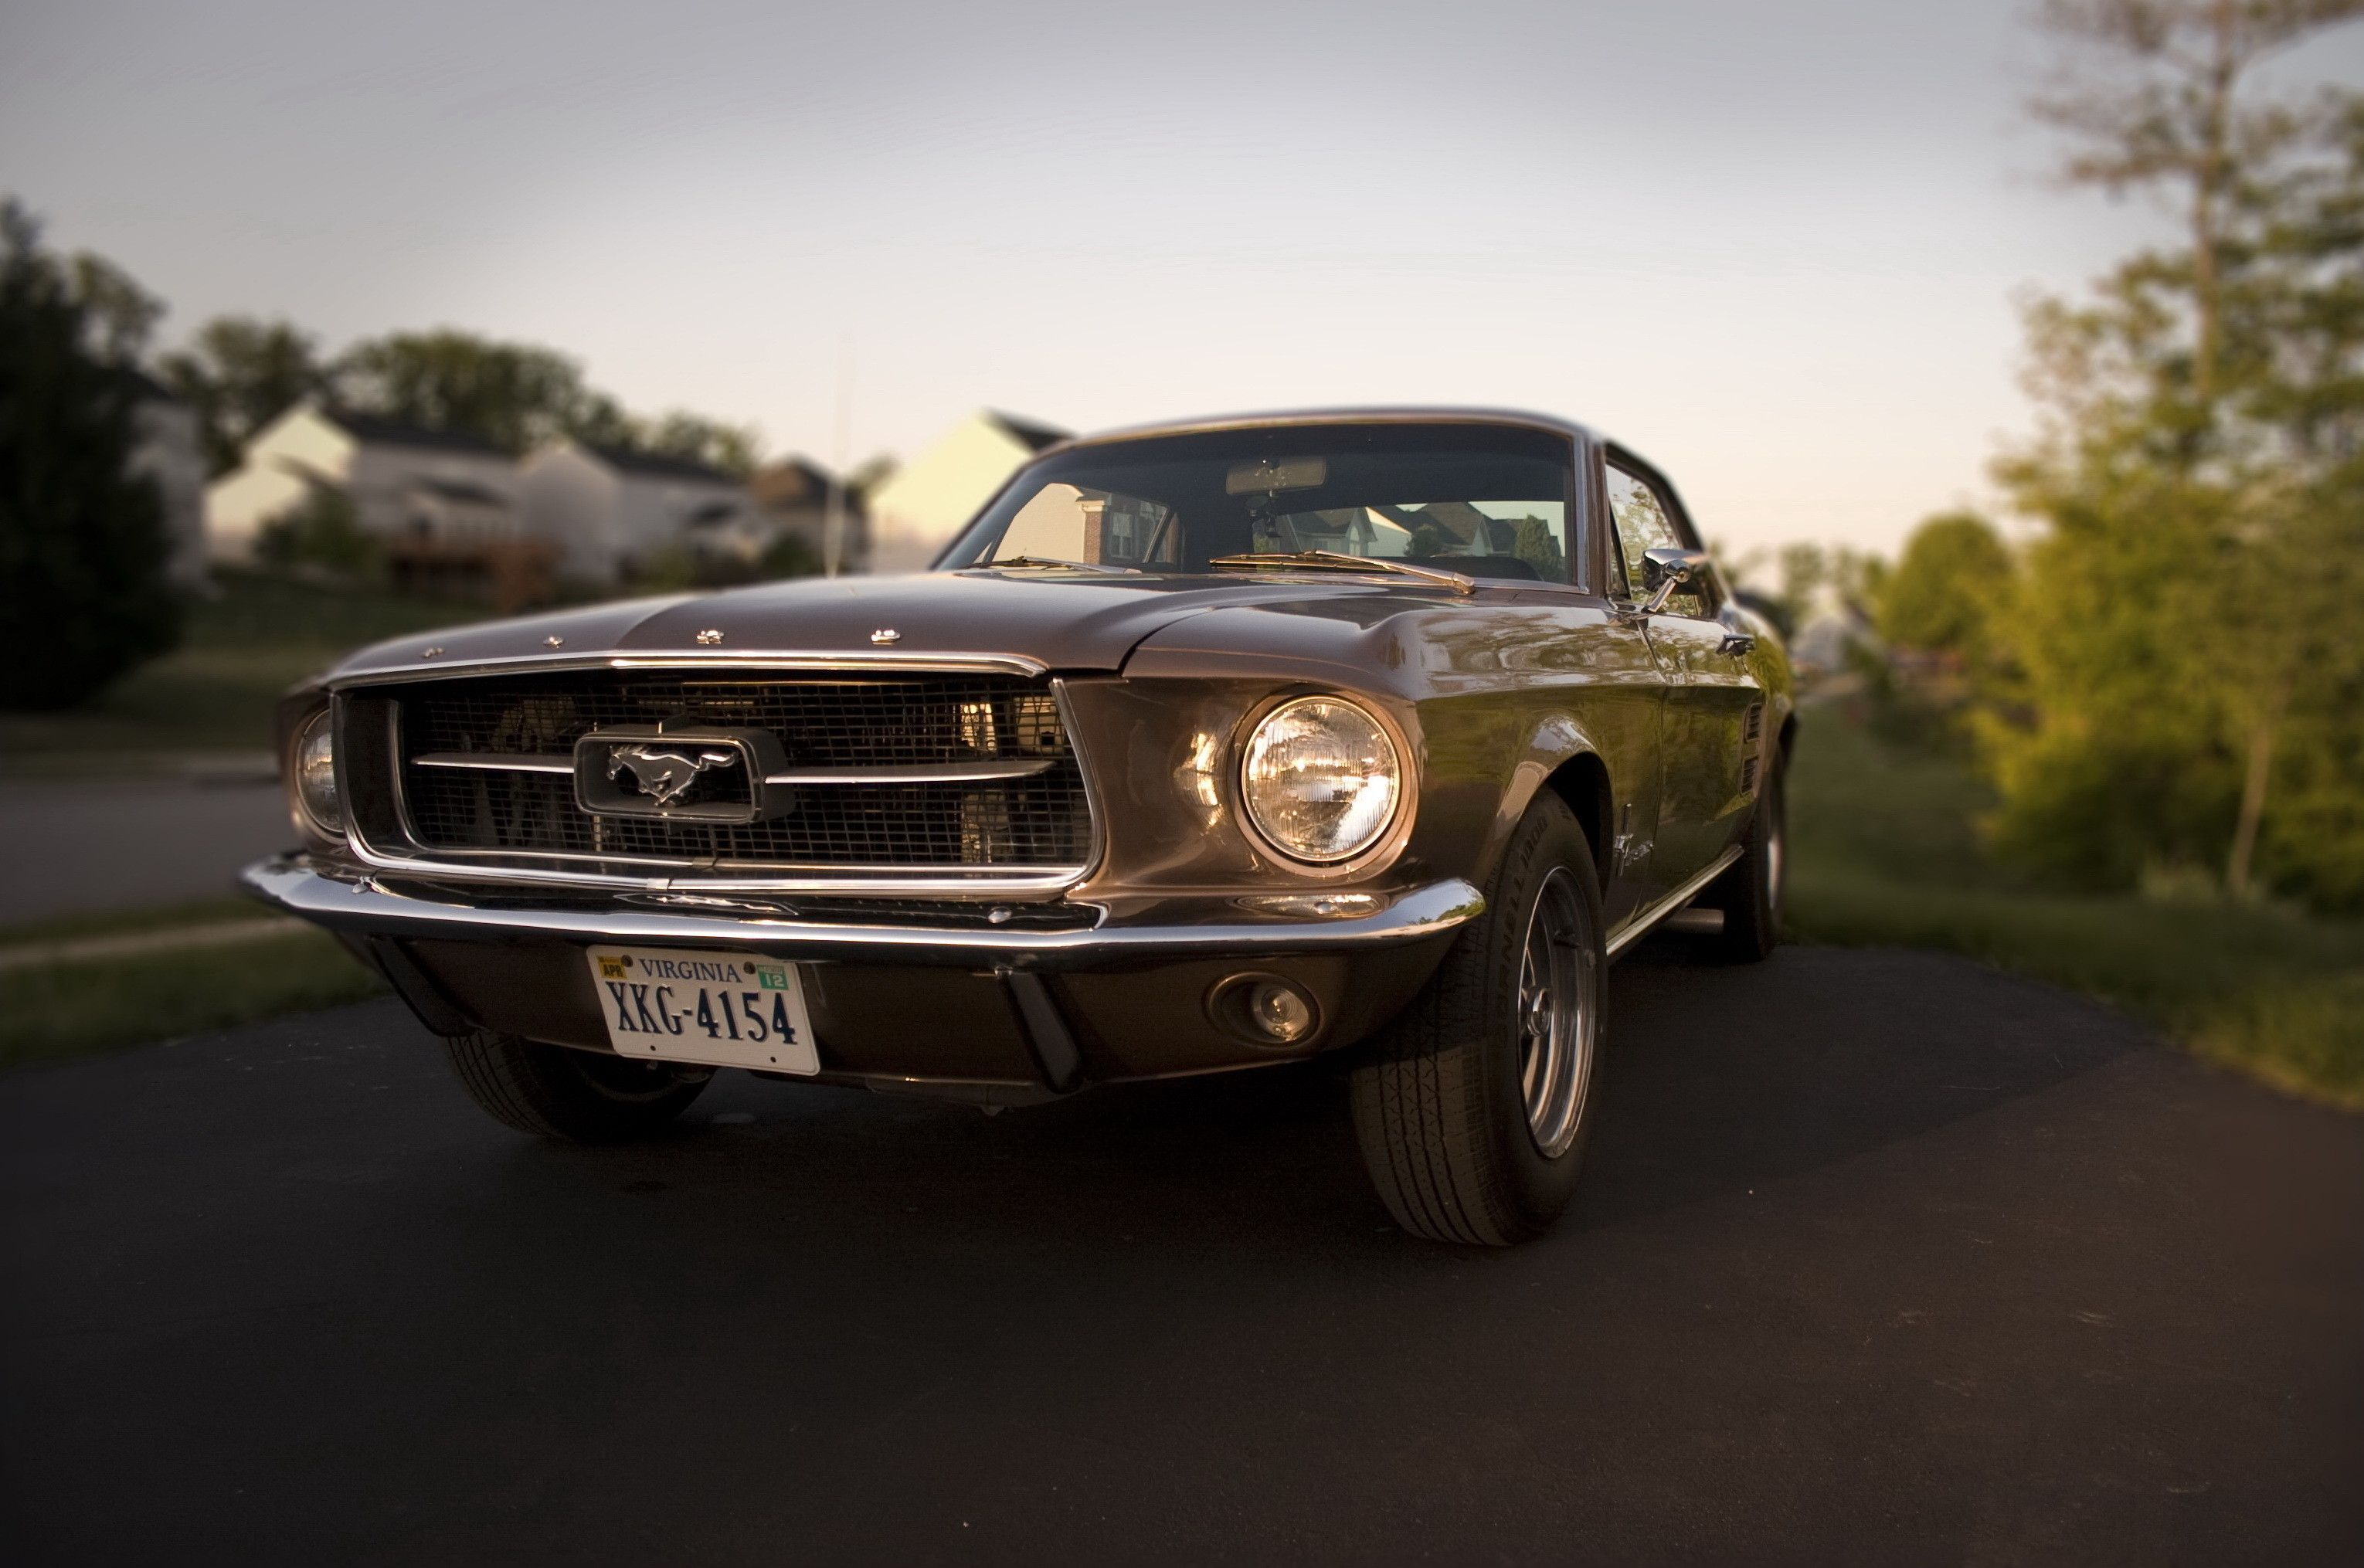 1967 Ford Mustang Wallpapers Top Free 1967 Ford Mustang Backgrounds Wallpaperaccess